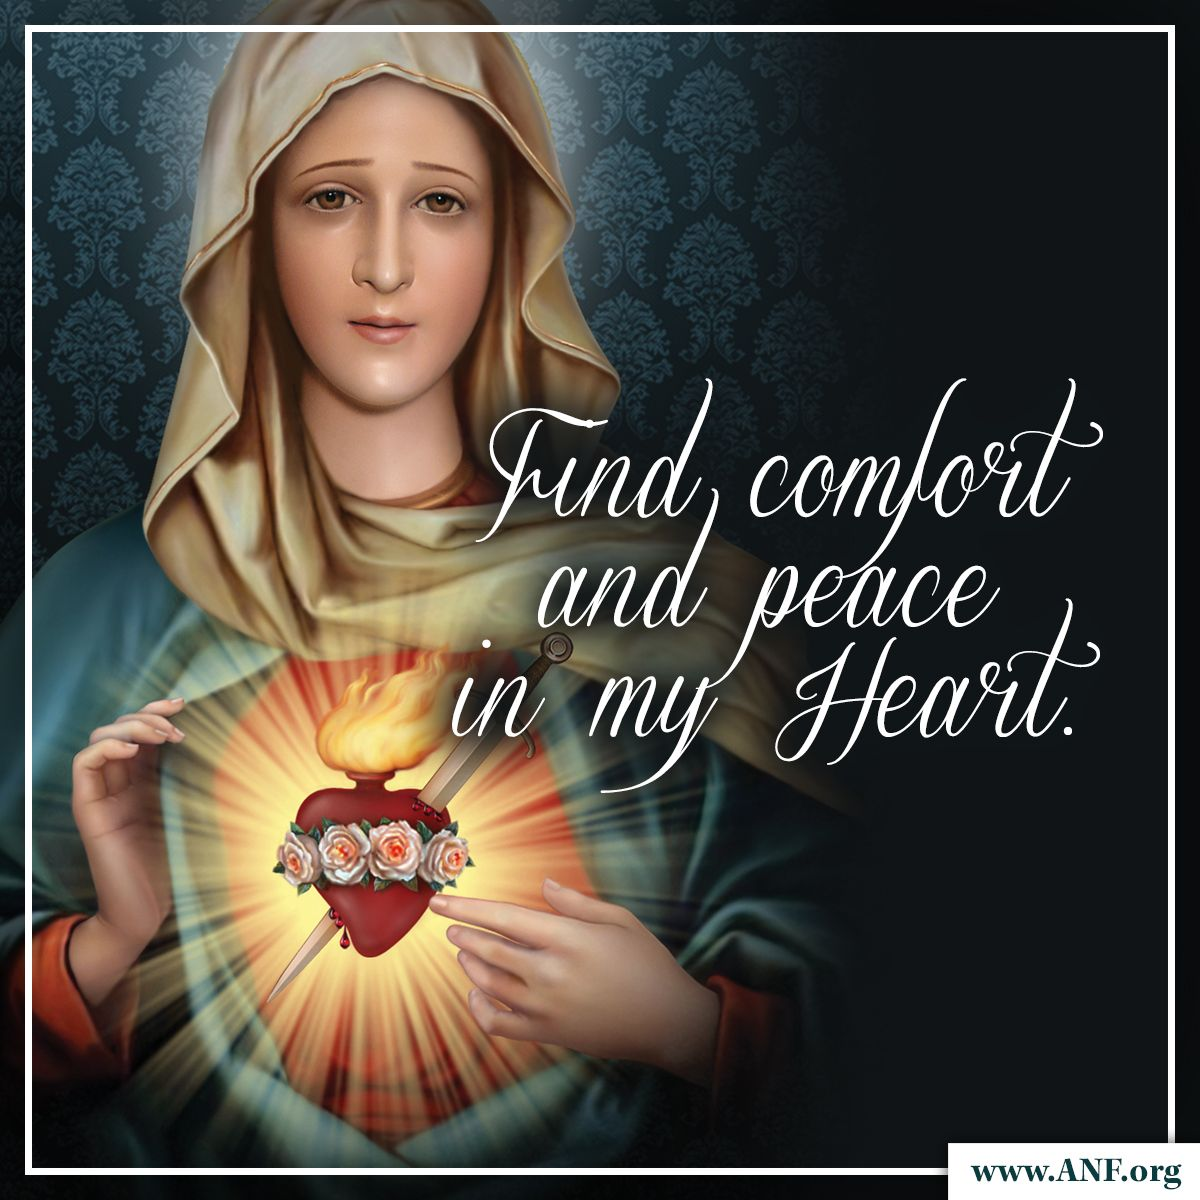 Our Blessed Mother will lead you to her Son! Mother mary